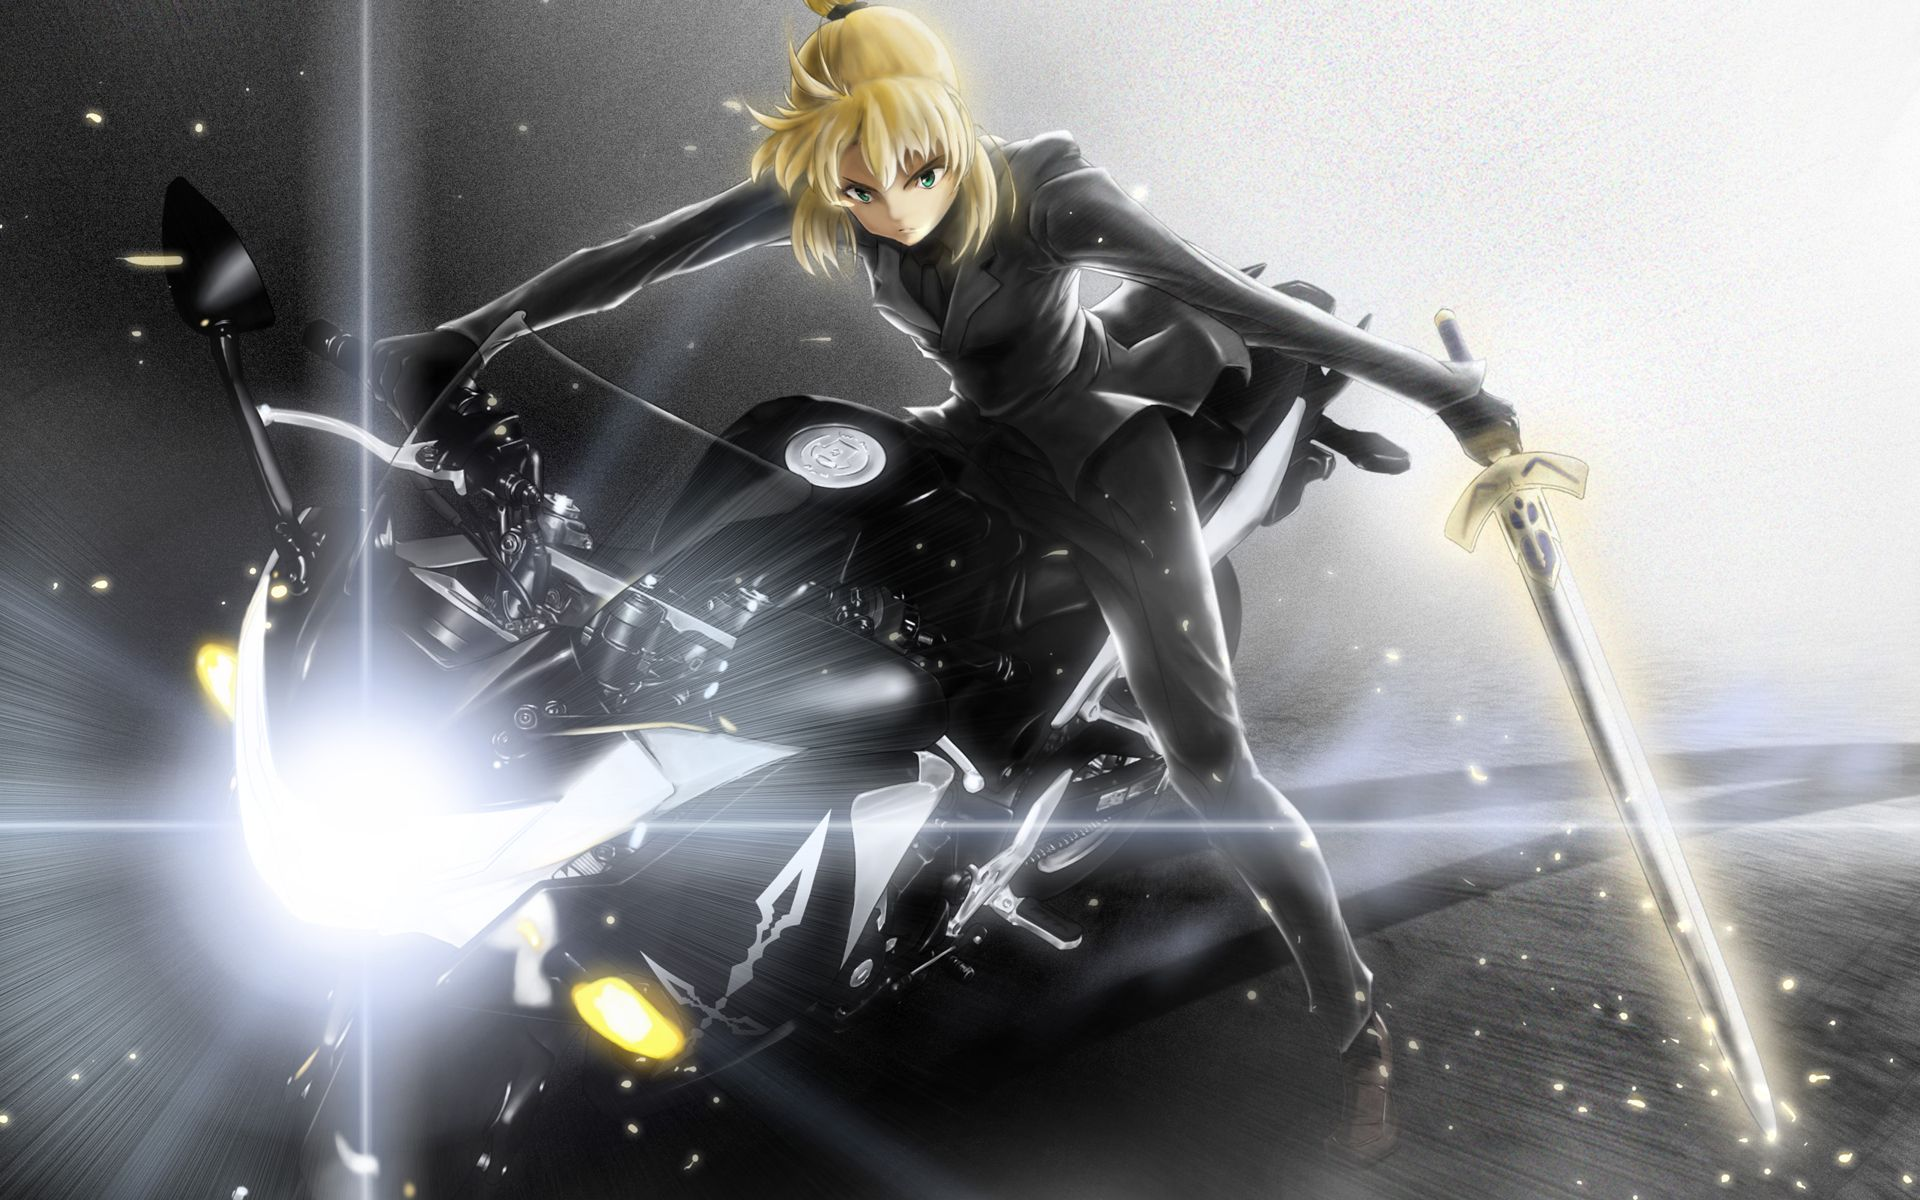 Fate/Zero Saber on a motorcycle Arte, Fate/stay night